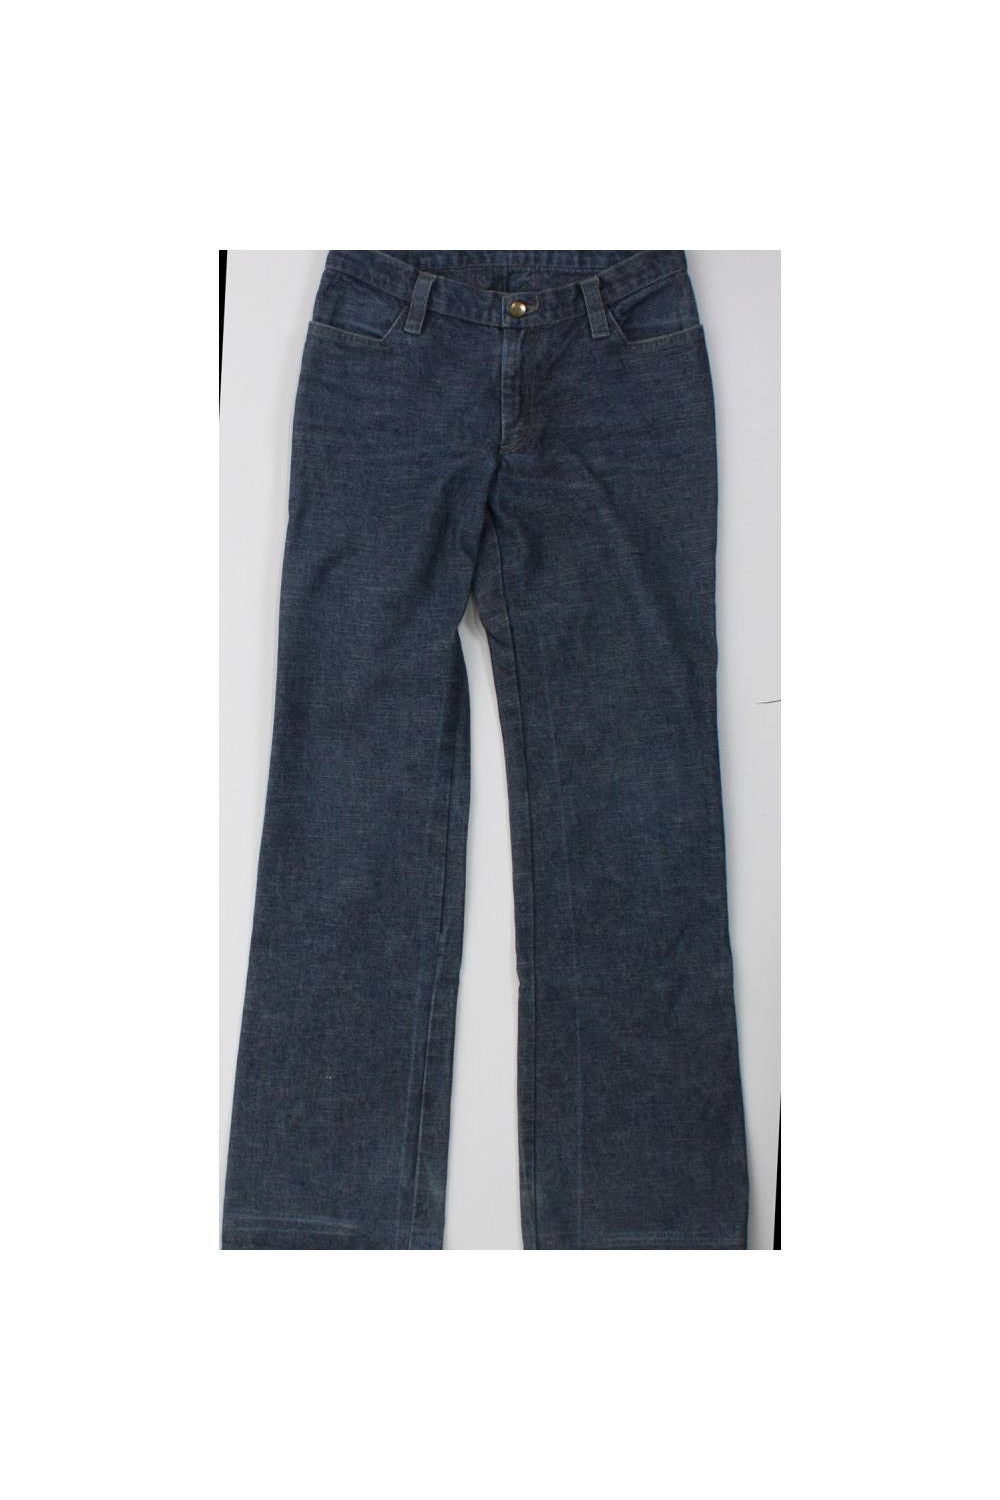 Jeans, Rodebjer, stl S